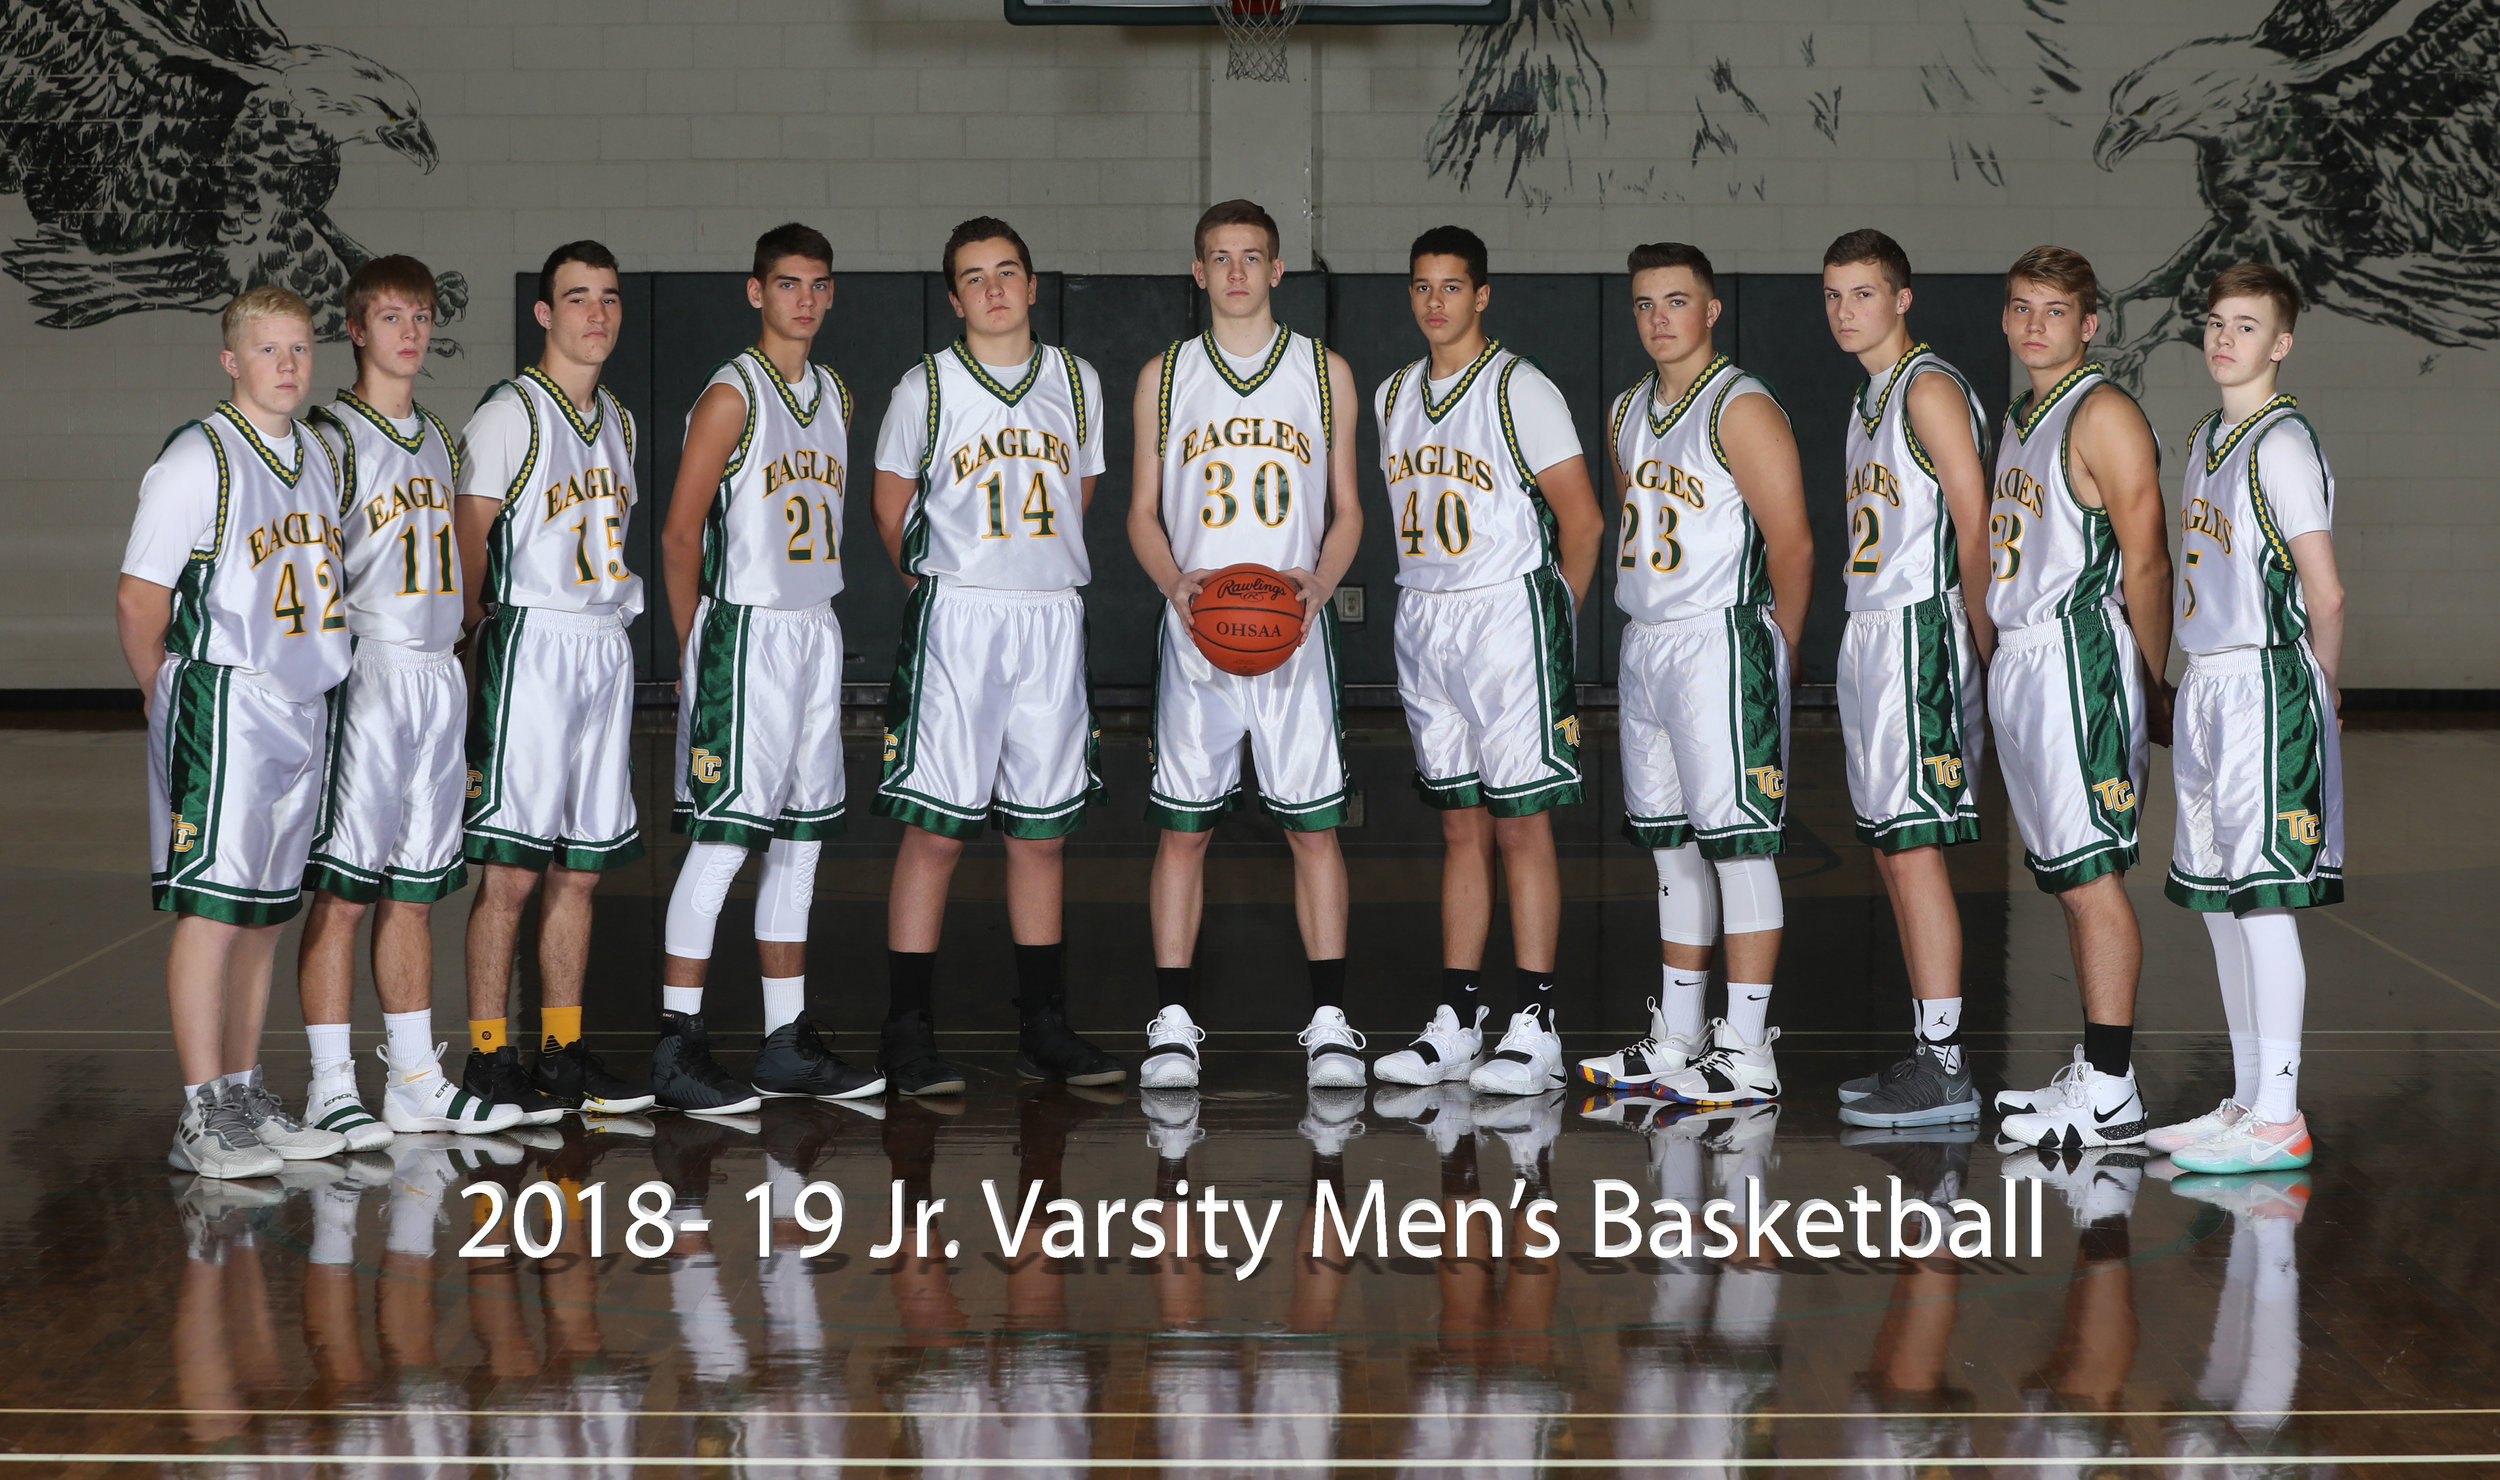 2017-18 Jr. Varsity & Freshmen Men's Basketball